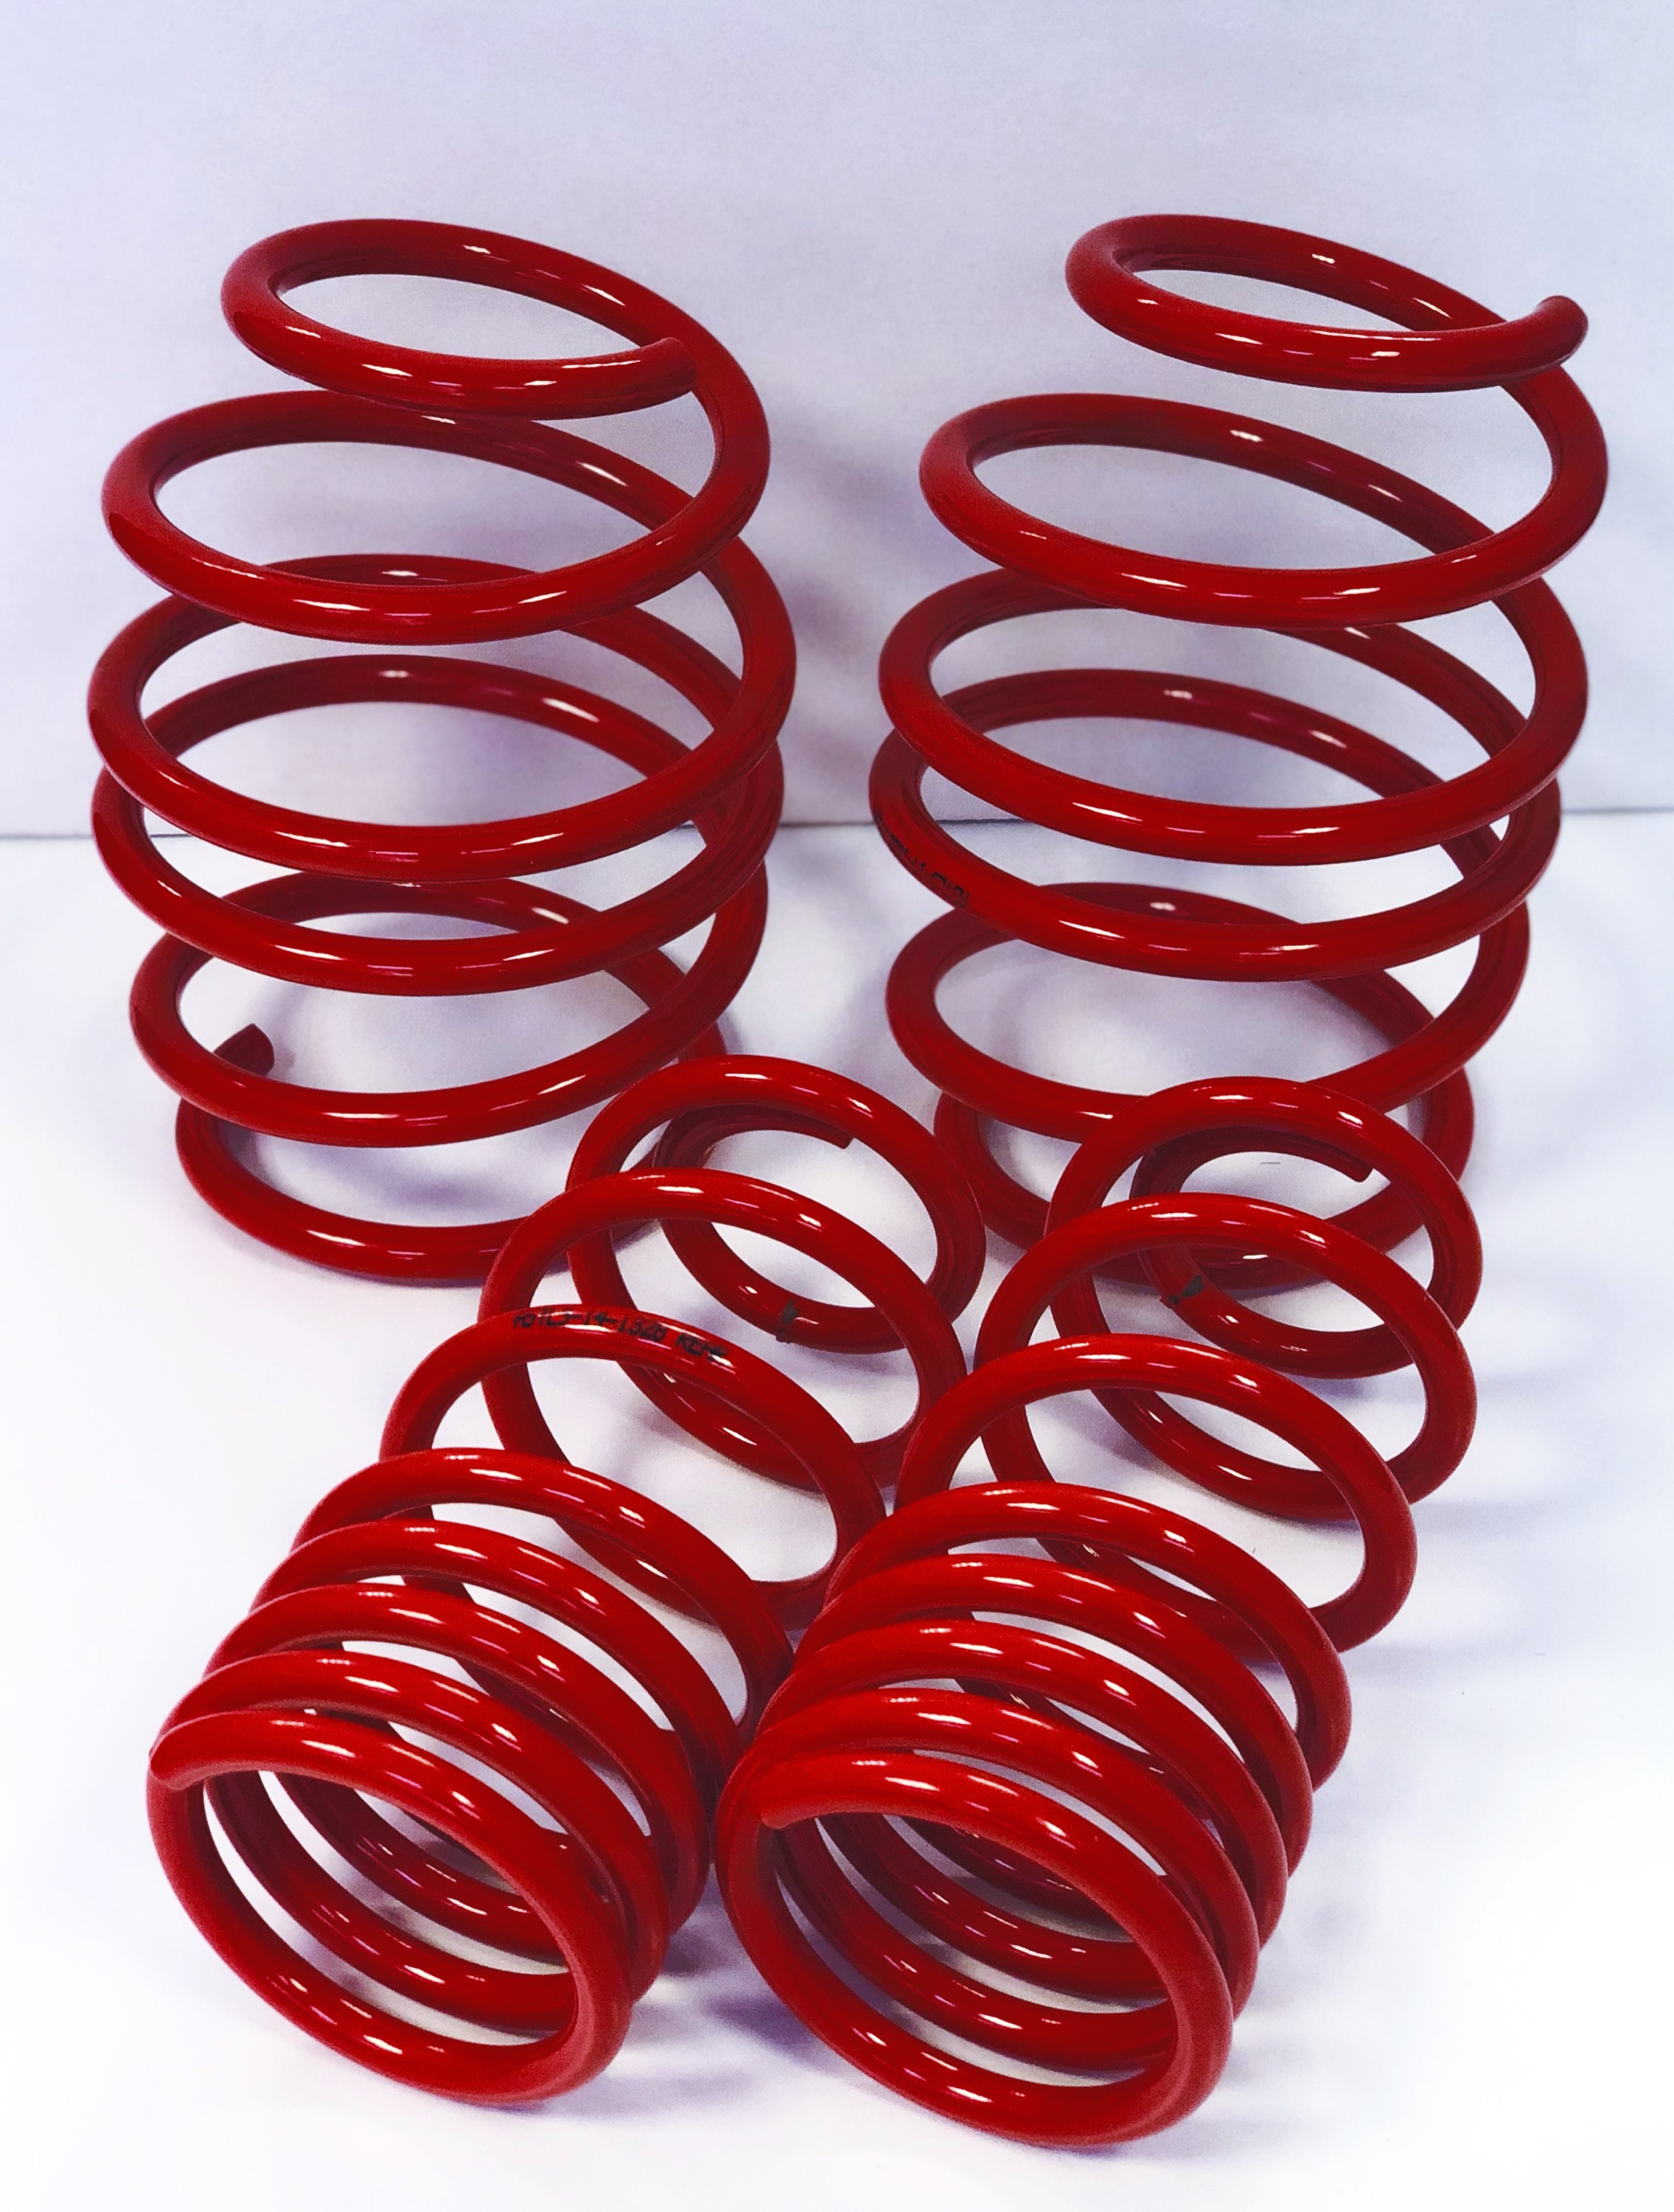 Renault LAGUNA AST Suspension Lowering Springs 30/35